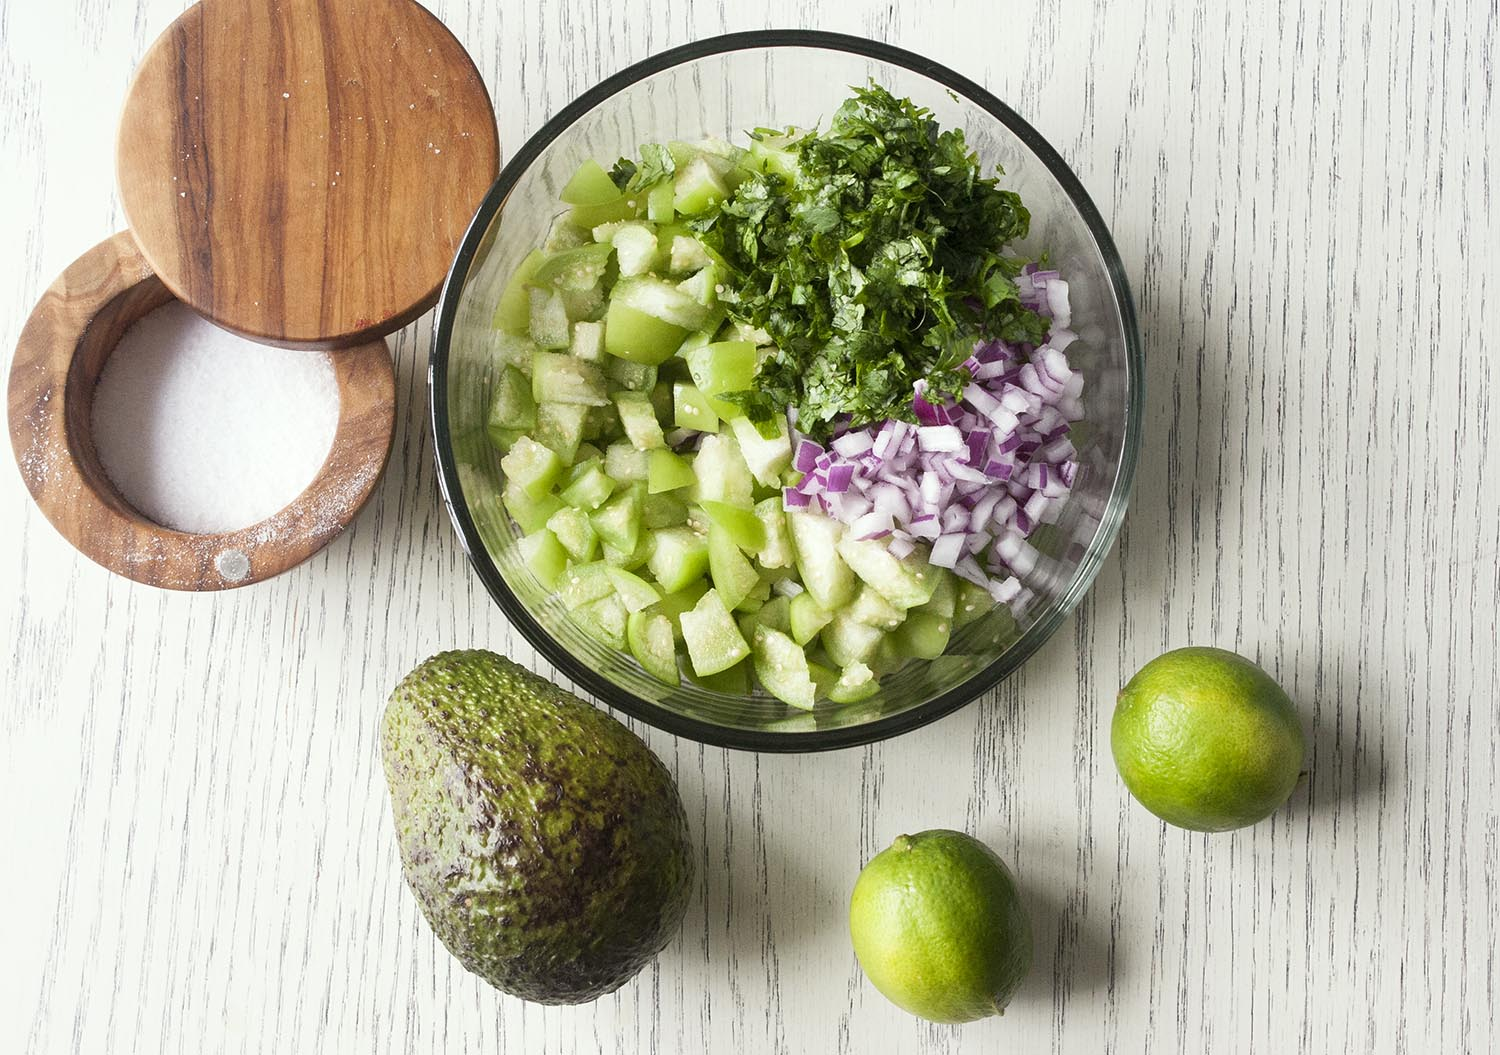 Ingredients for a fresh, chunky and bright Tomatillo & Avocado Salsa. www.lifeaswecookit.com